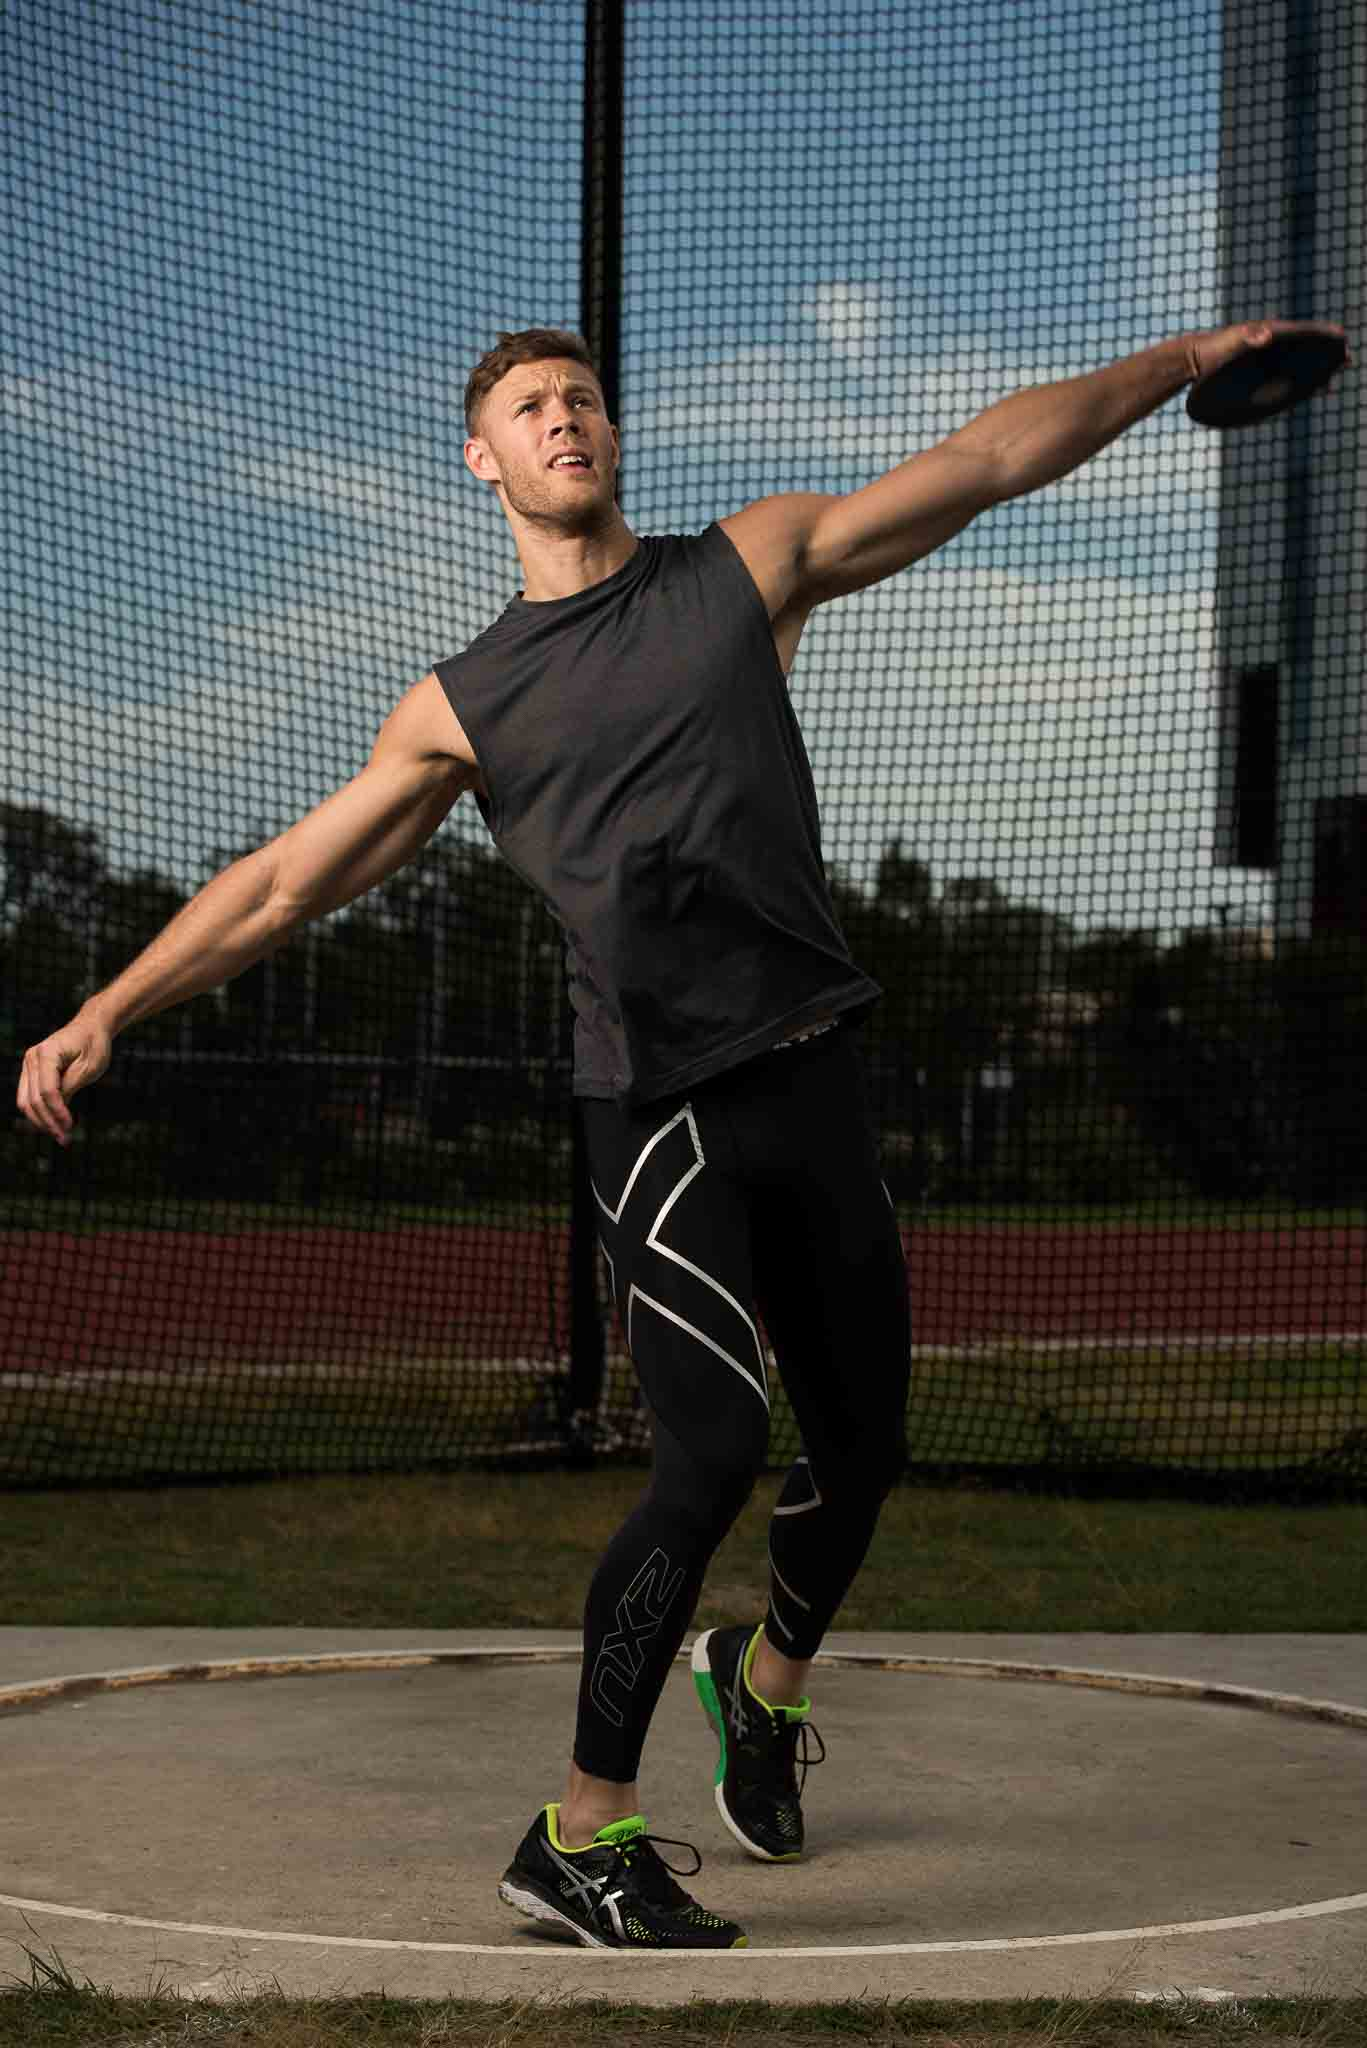 Josh Brisbane's fitness model throwing discus